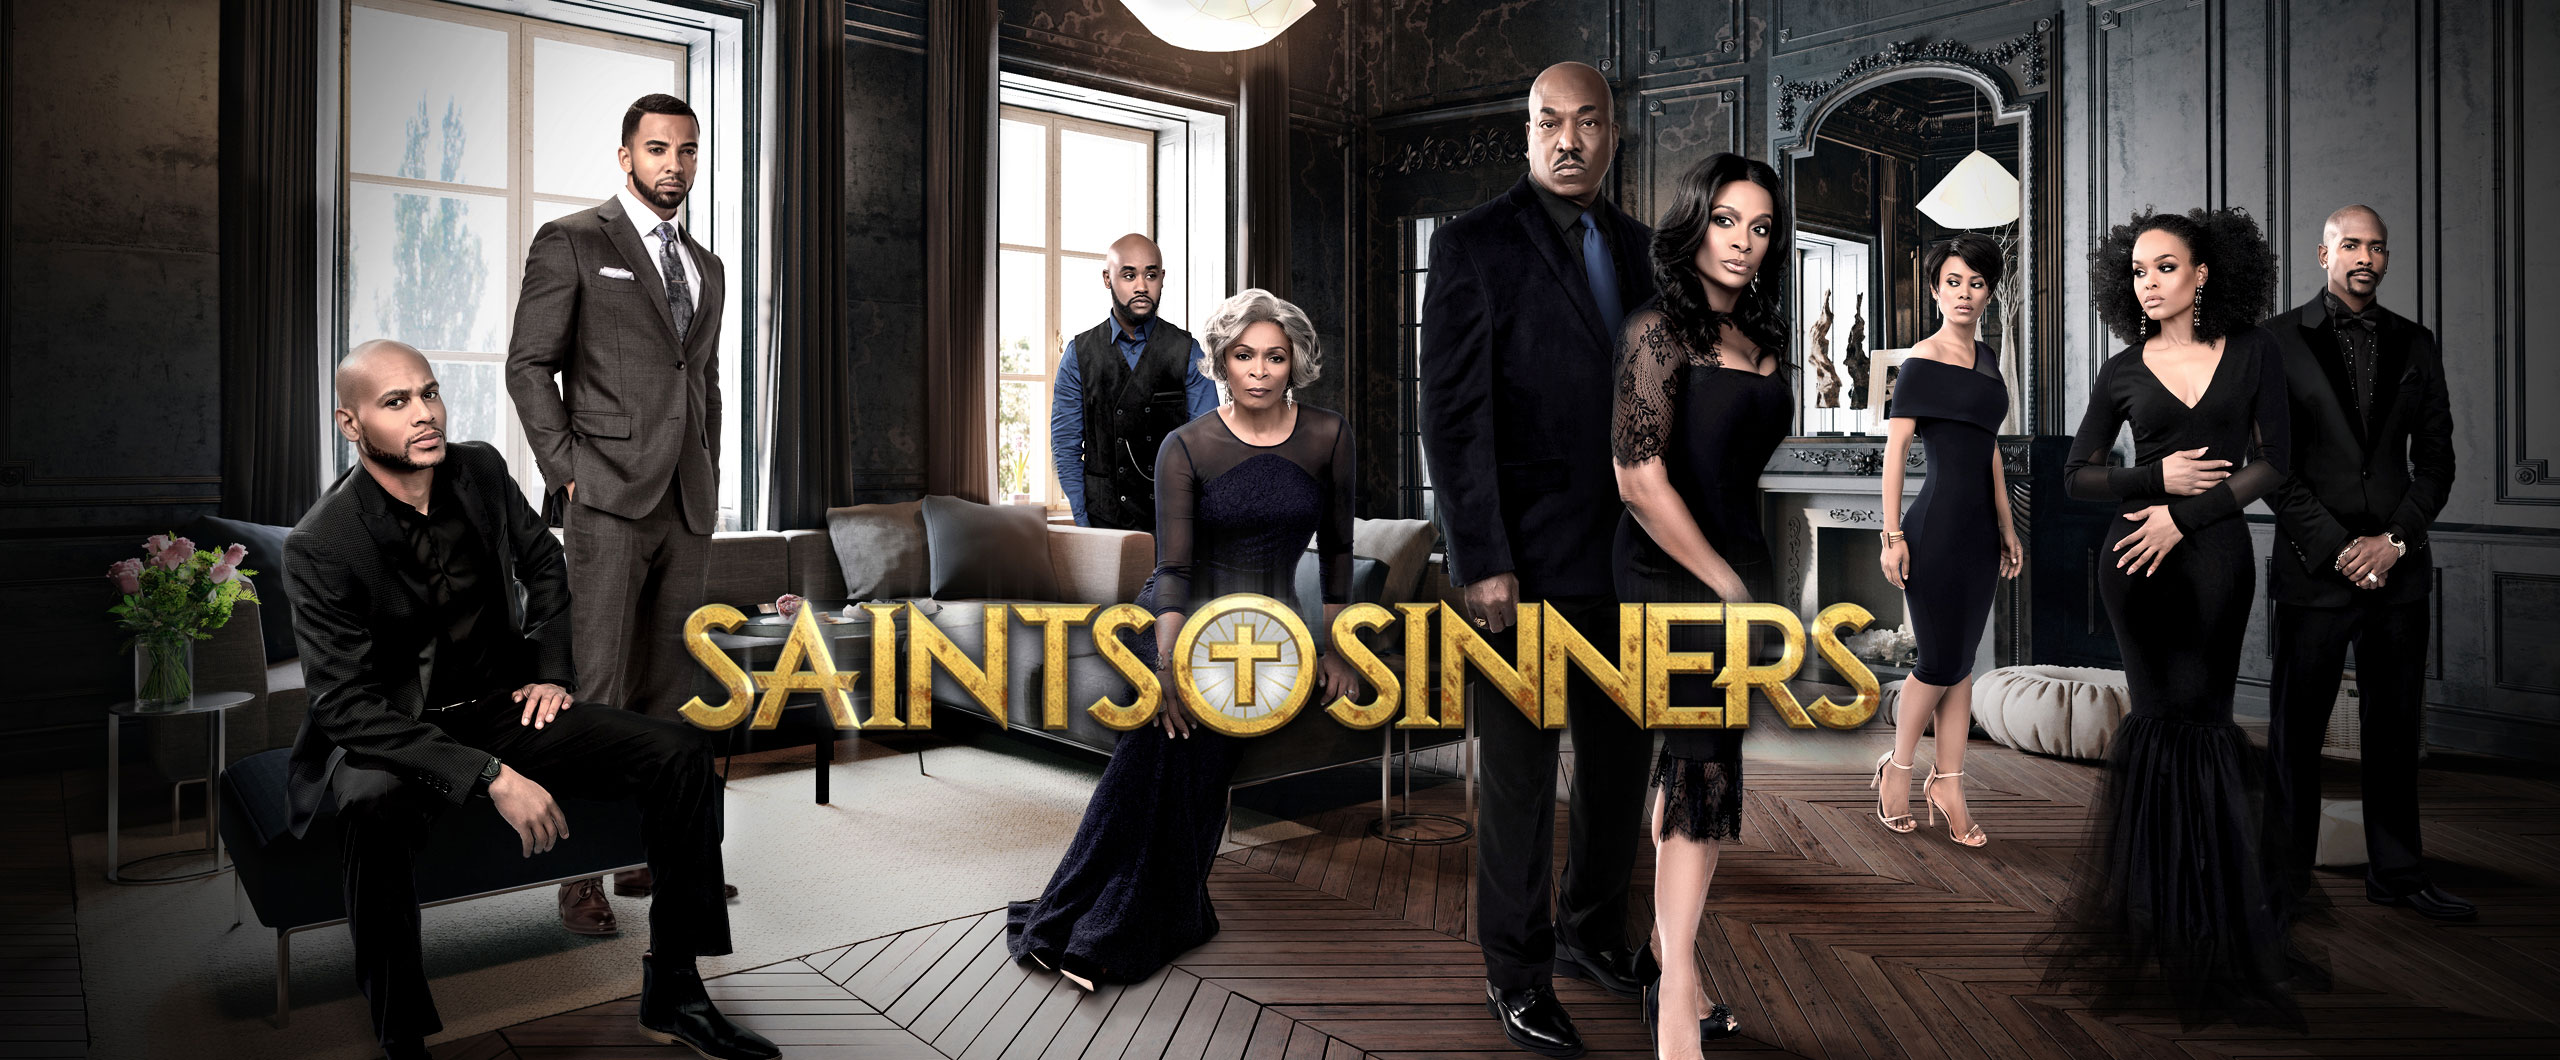 Saints & Sinners All New Episode  May 21  9/8c - Web Slider